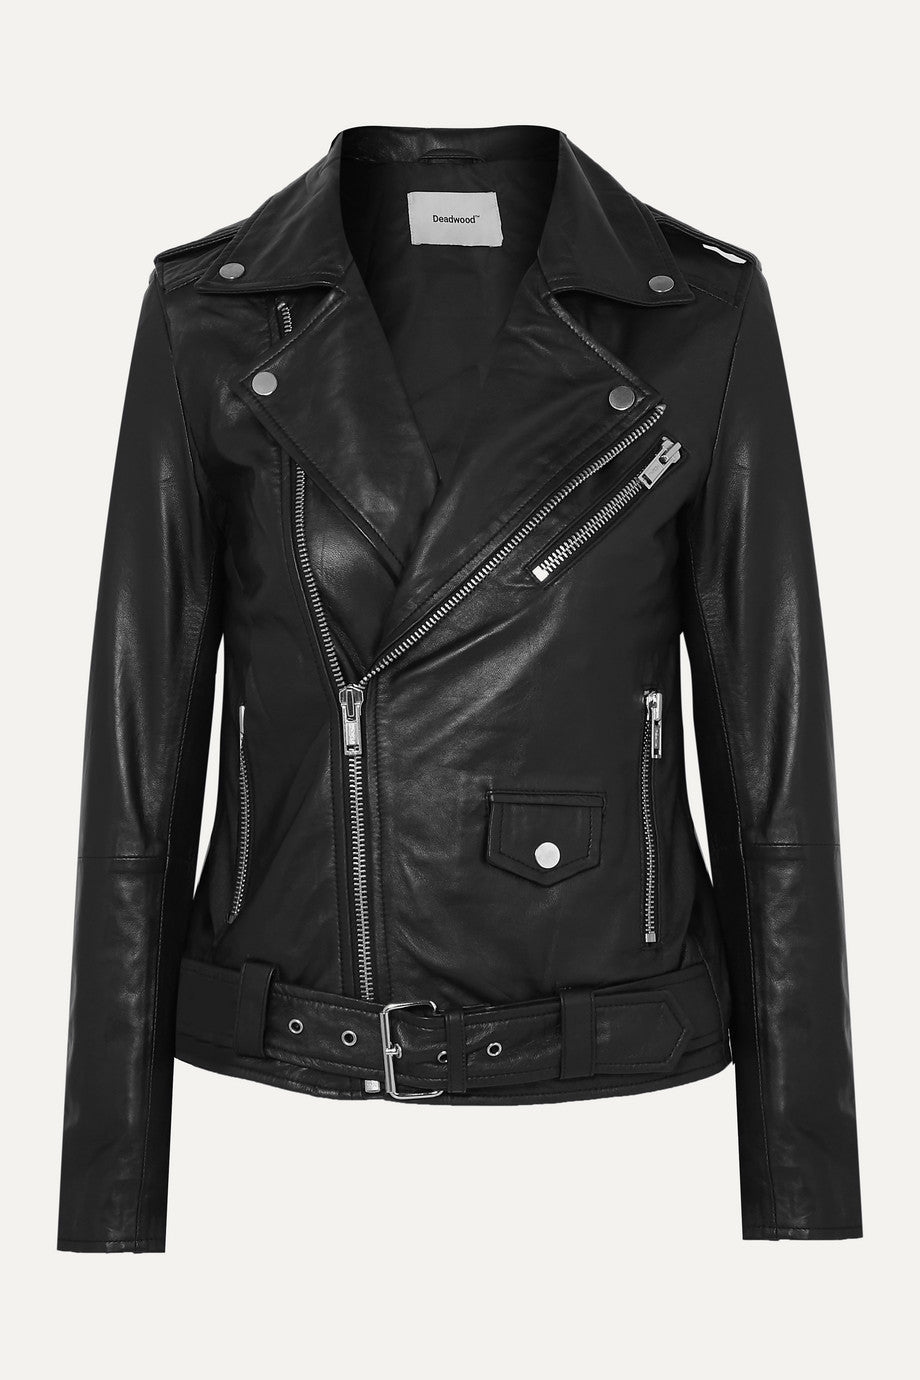 Deadwood + Net Sustain Classic Biker Leather Jacket